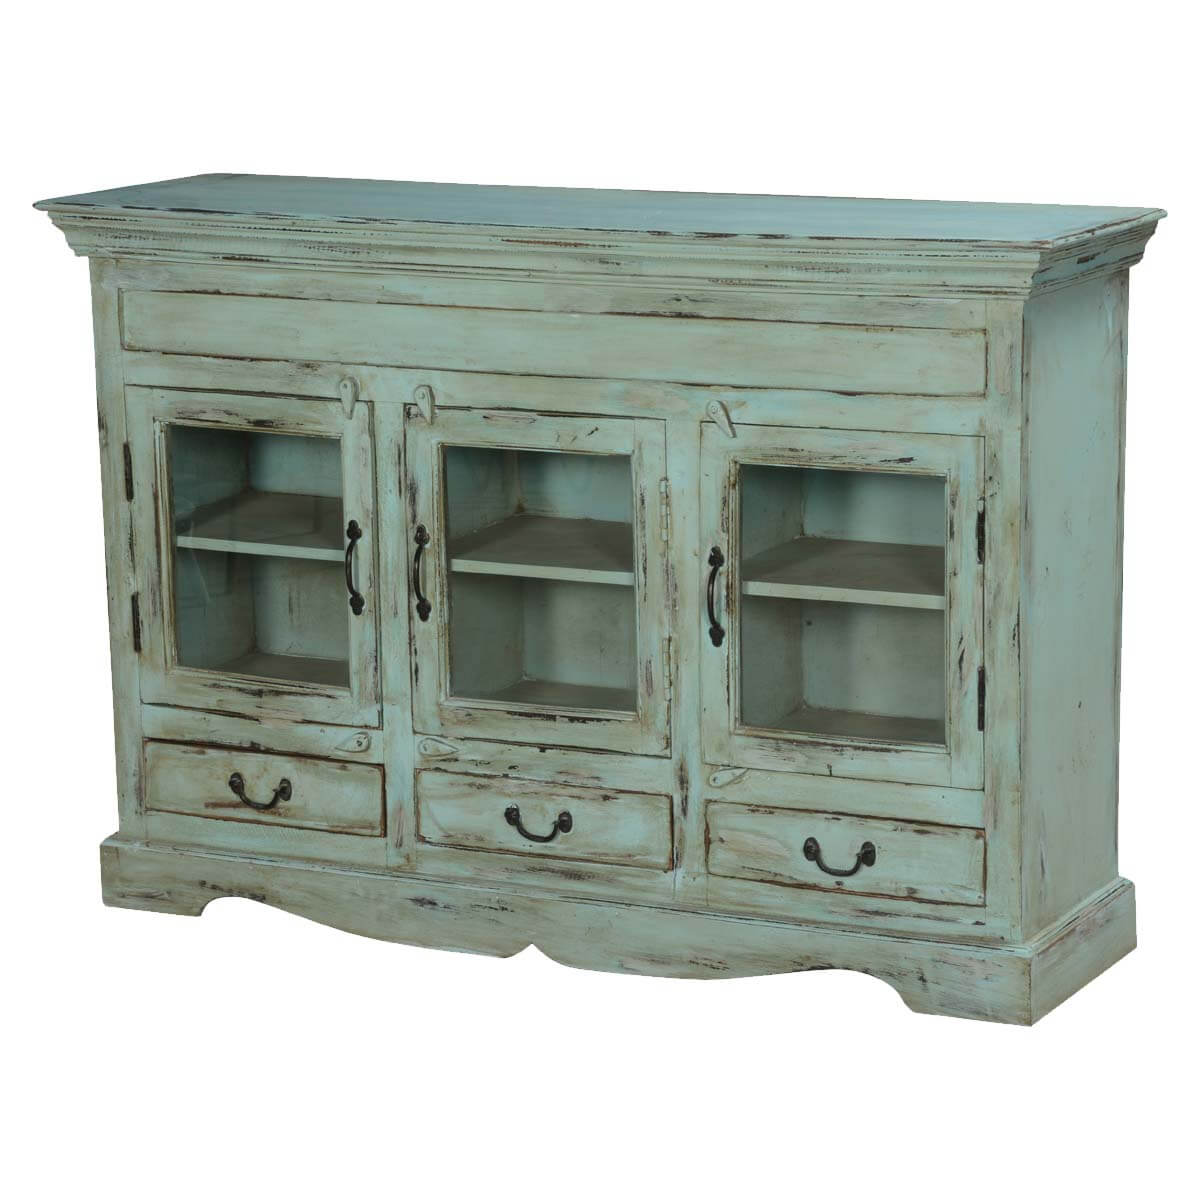 Dutch Boy Distressed Blue Mango Wood 3 Drawer Rustic Buffet Cabinet